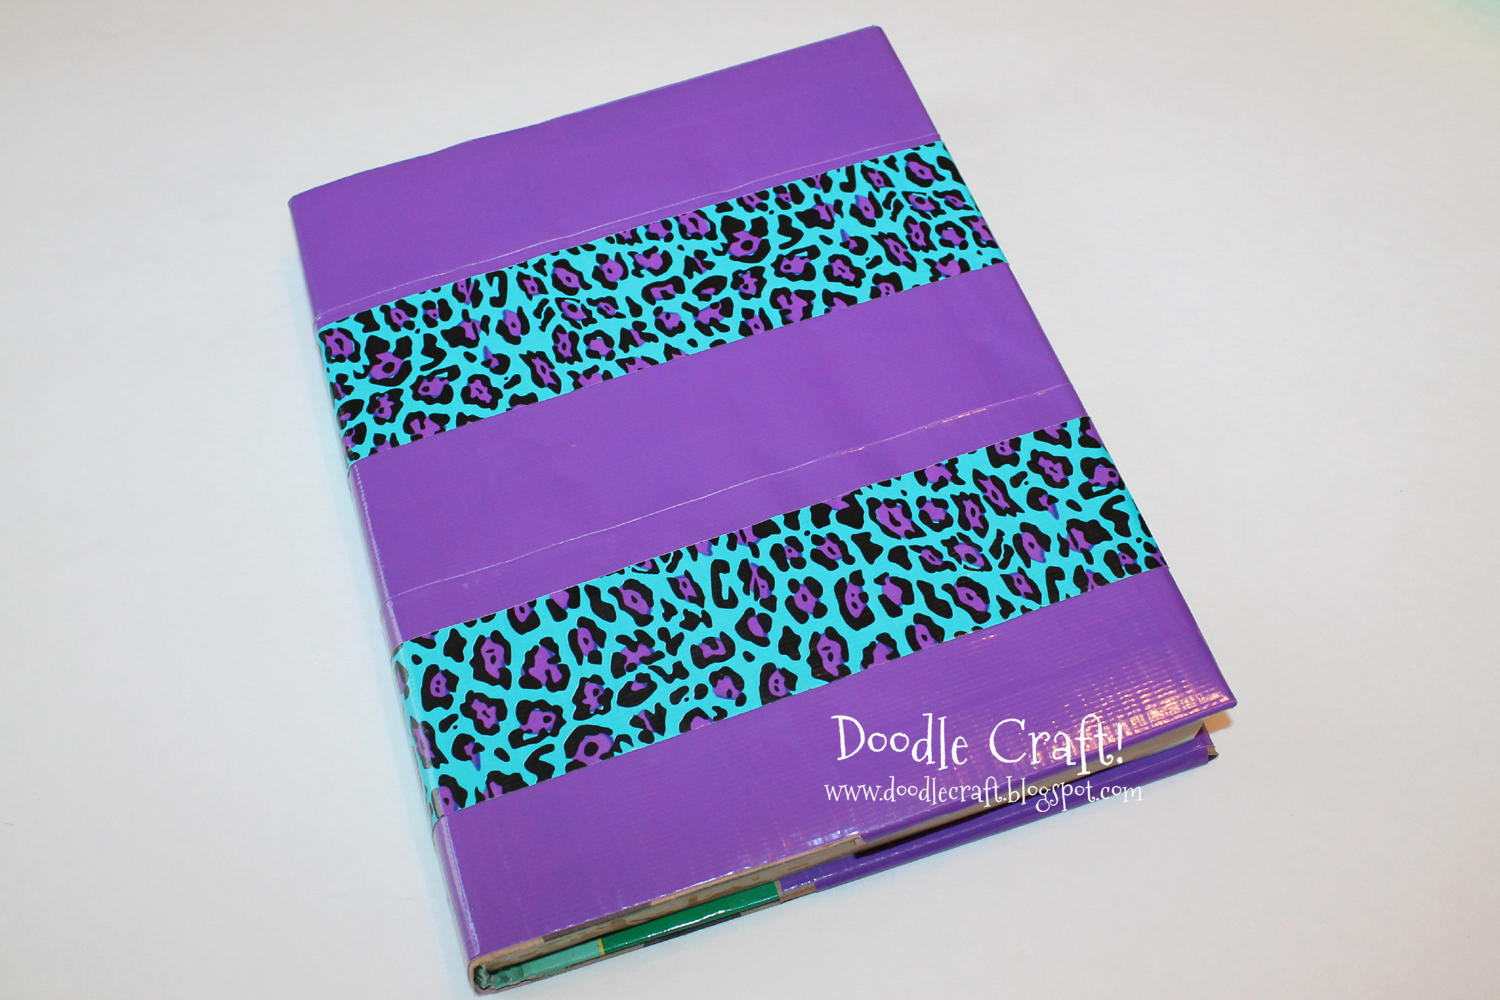 Doodlecraft how to cover a textbook with duct tape for Duck tape craft ideas